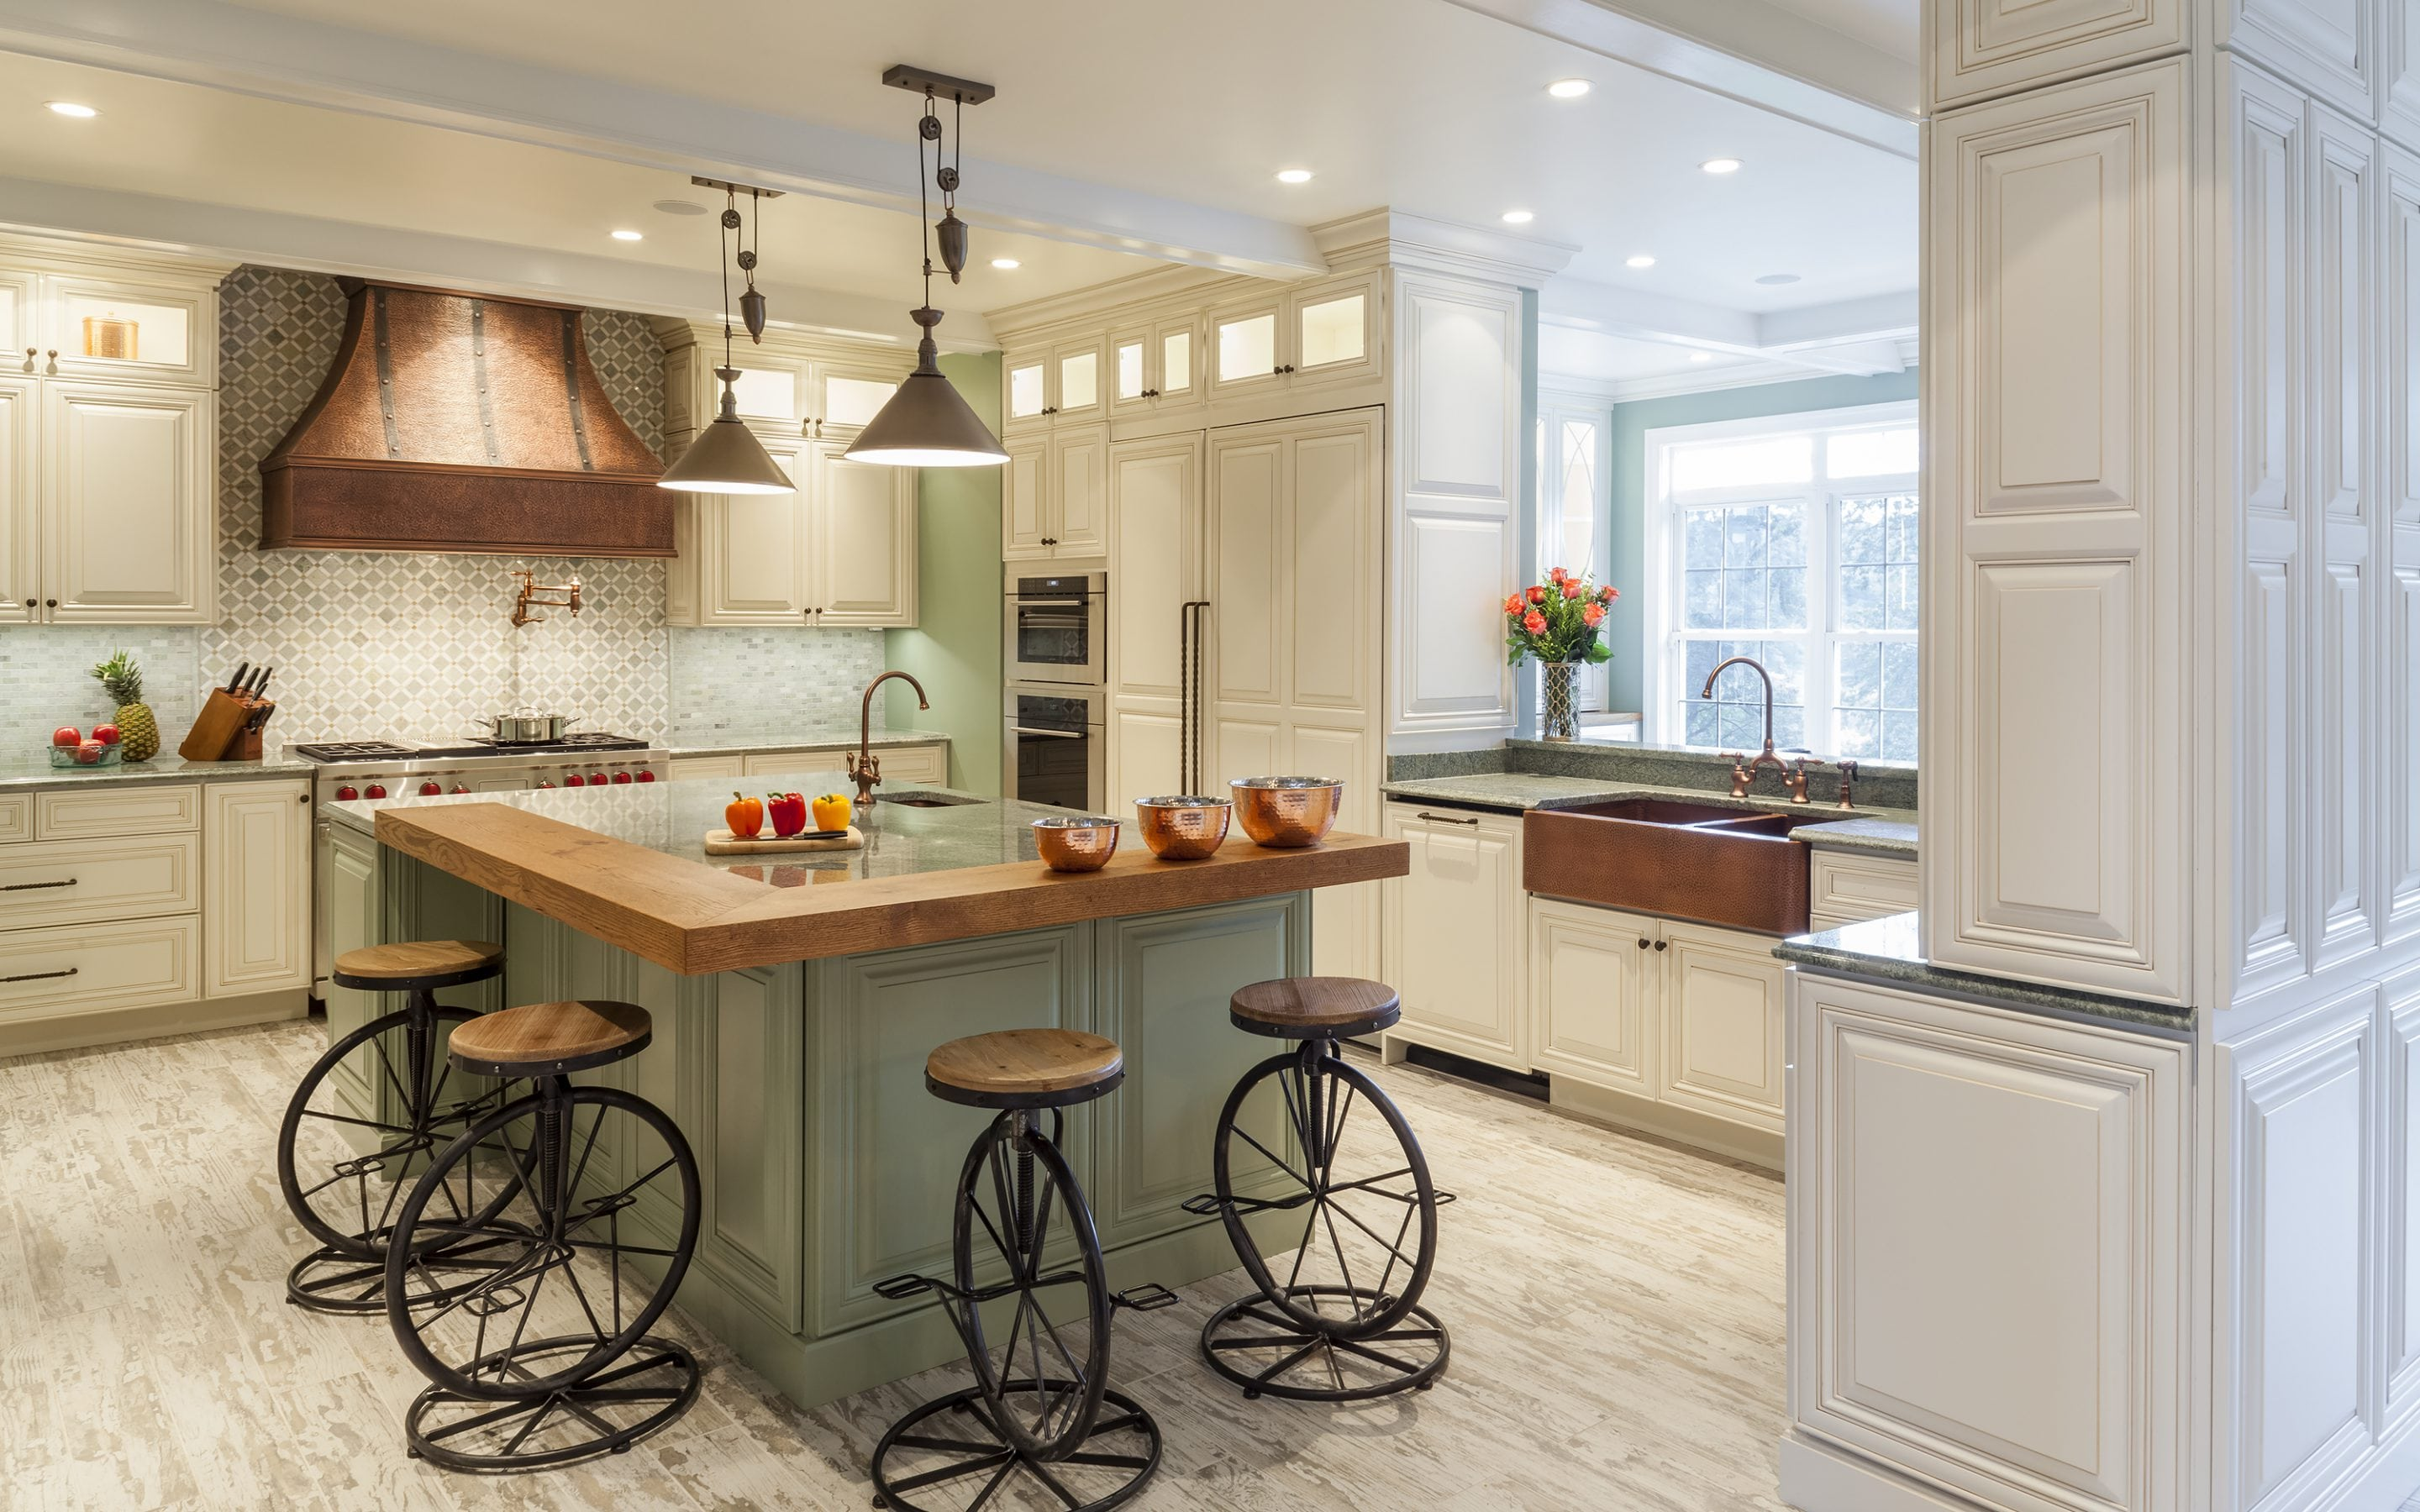 rustic kitchen design with island bar